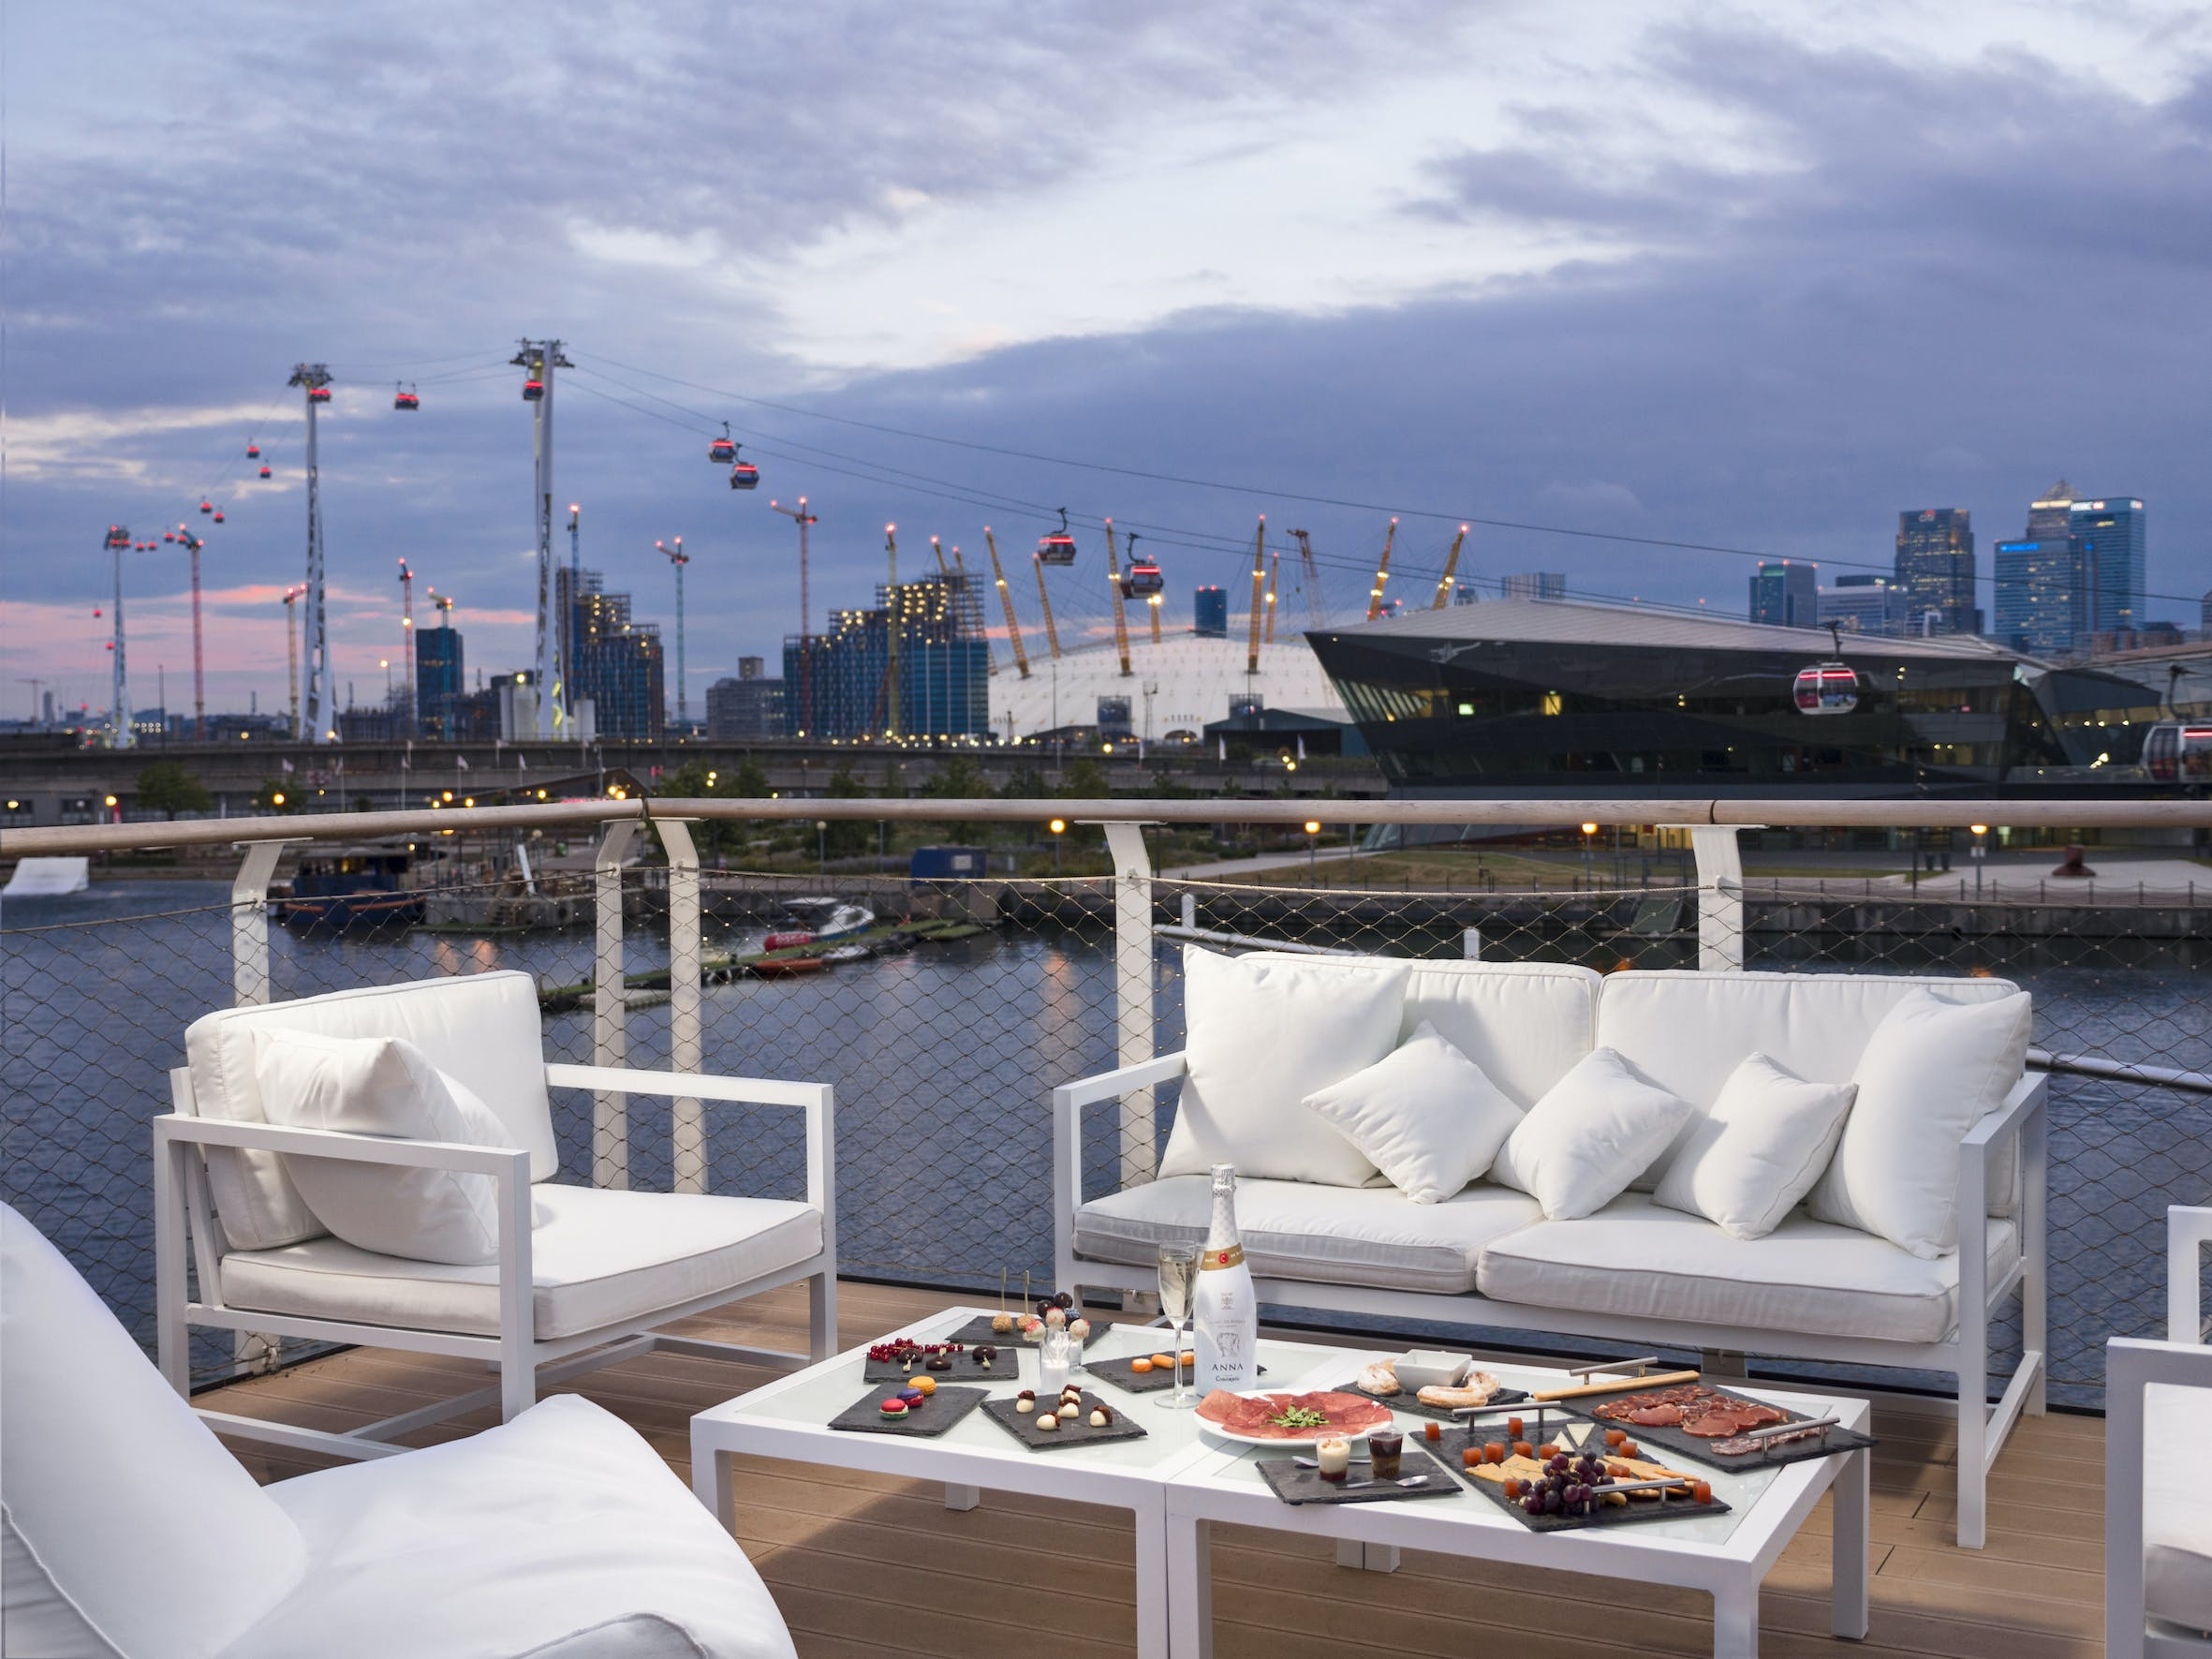 The Good Hotel : The roof events good hotel london